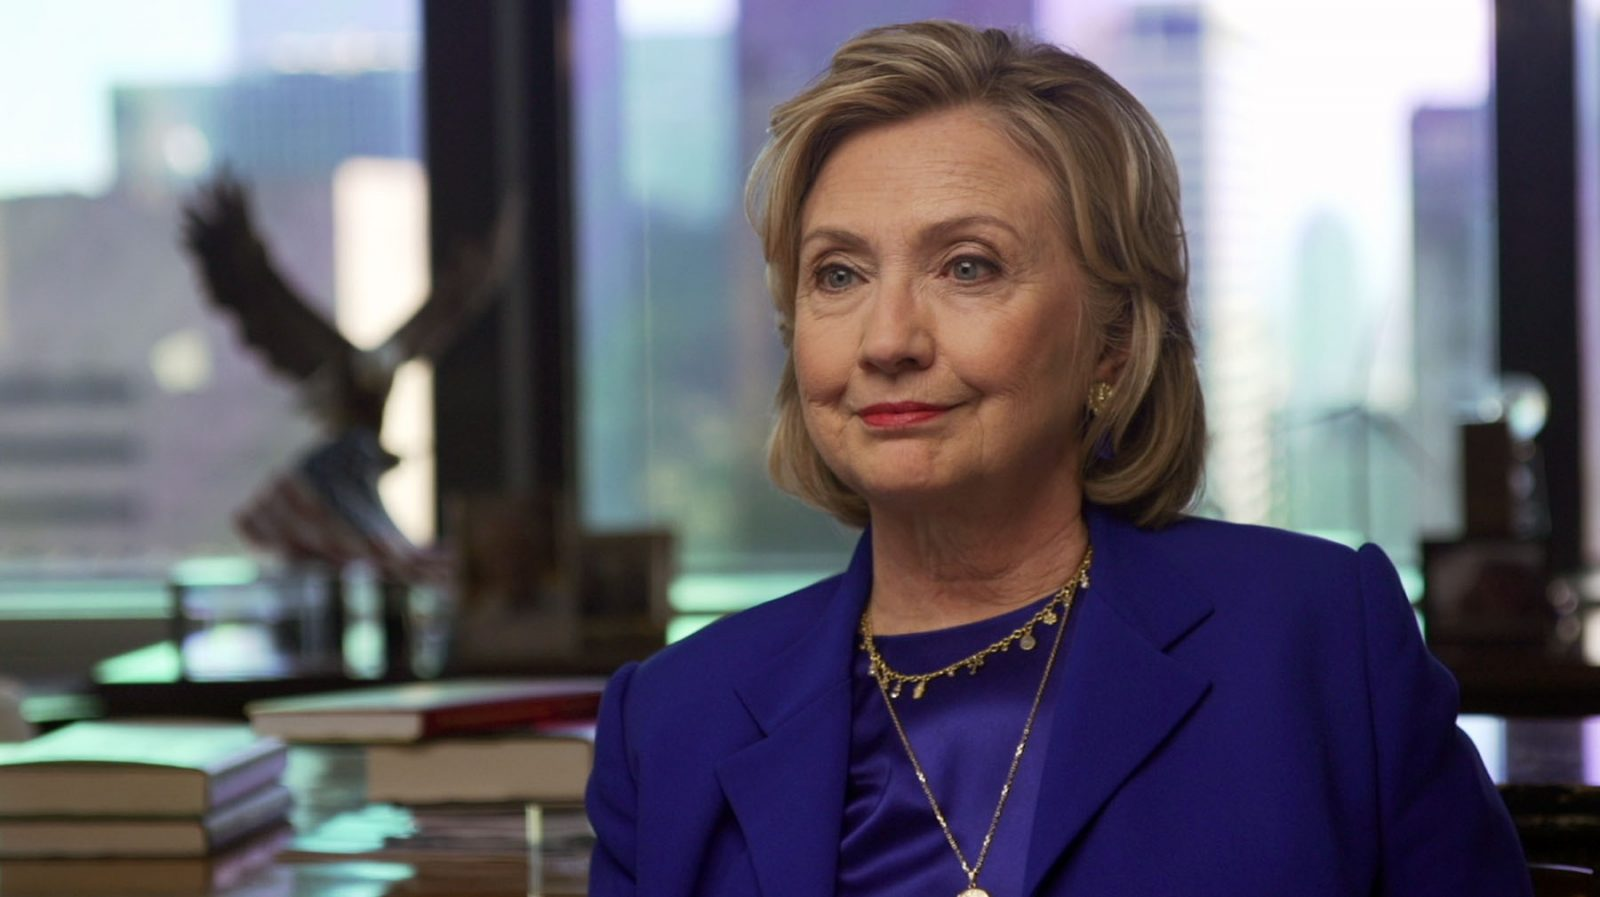 Hillary Clinton on Hillary Clinton: The Power of Women